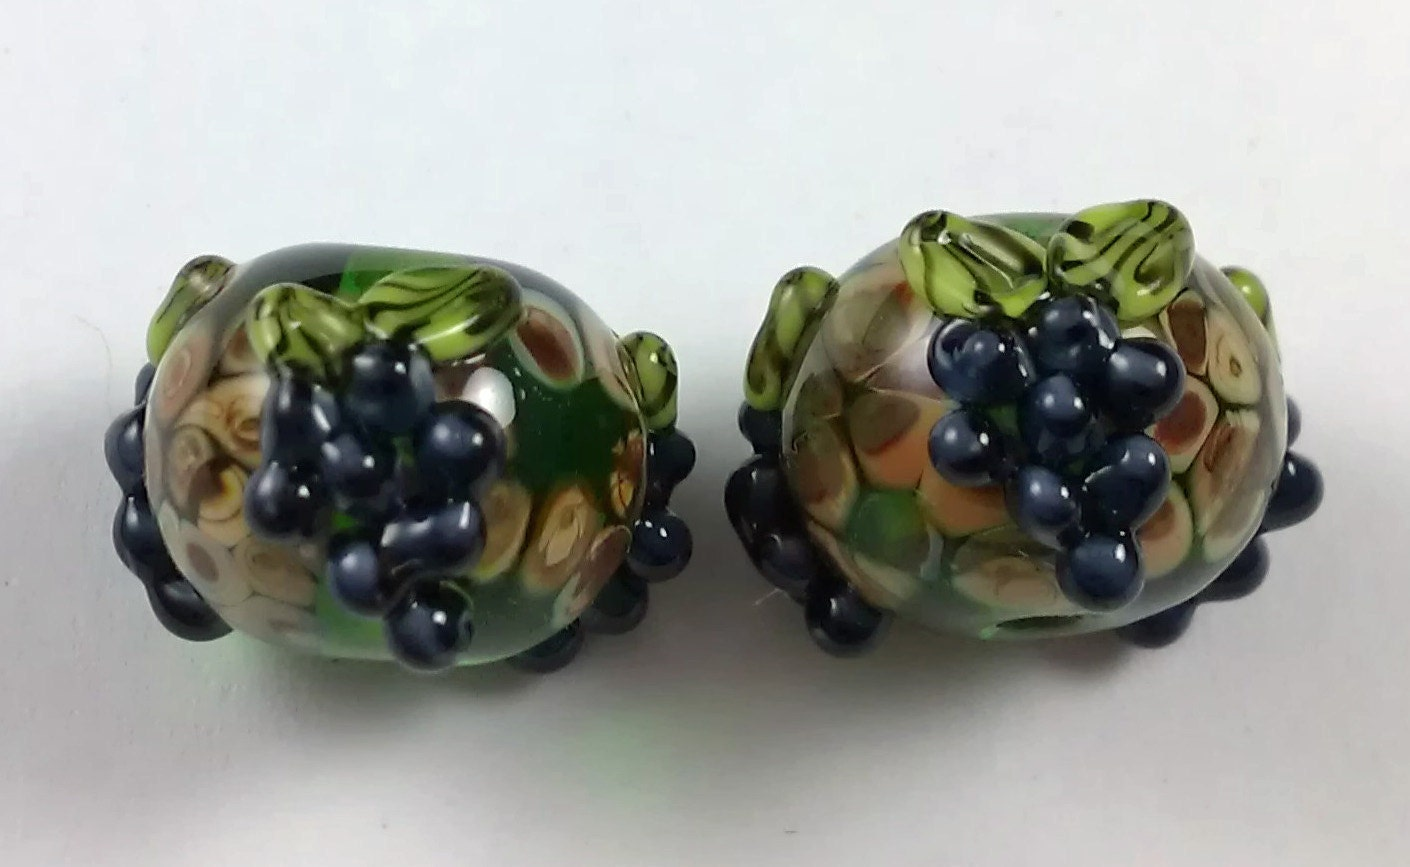 Matched grapes